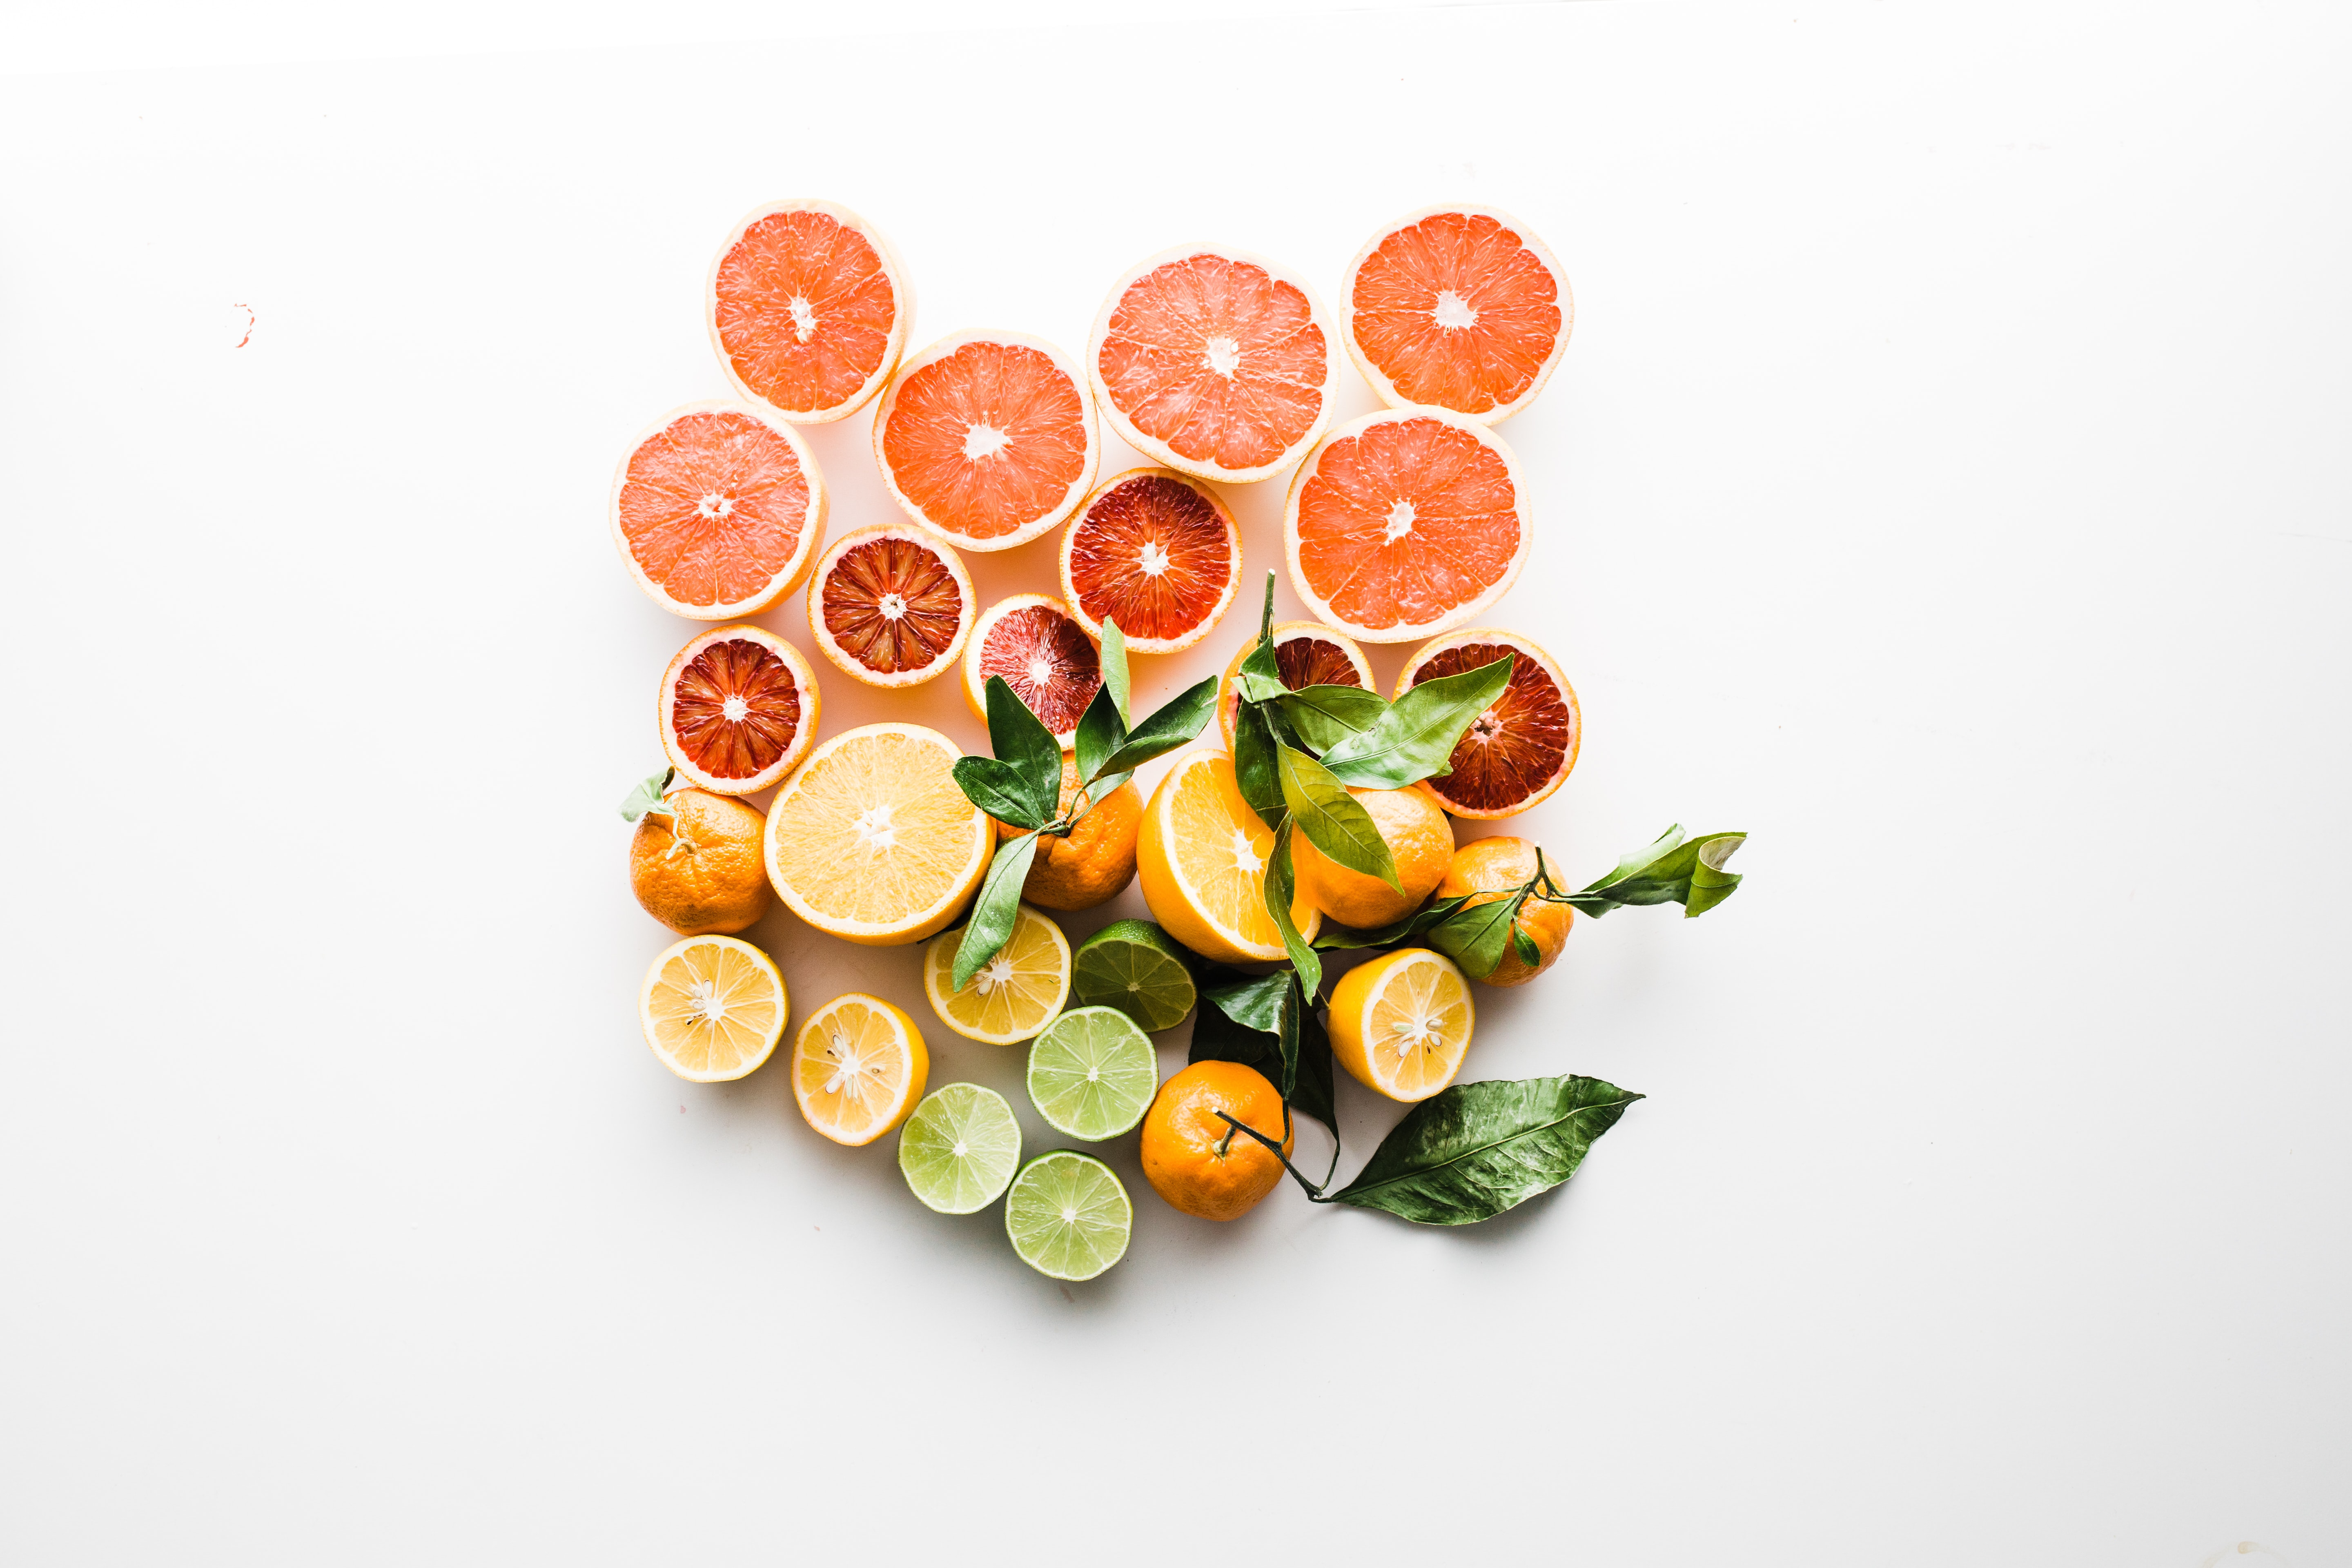 sliced fruit on white surface